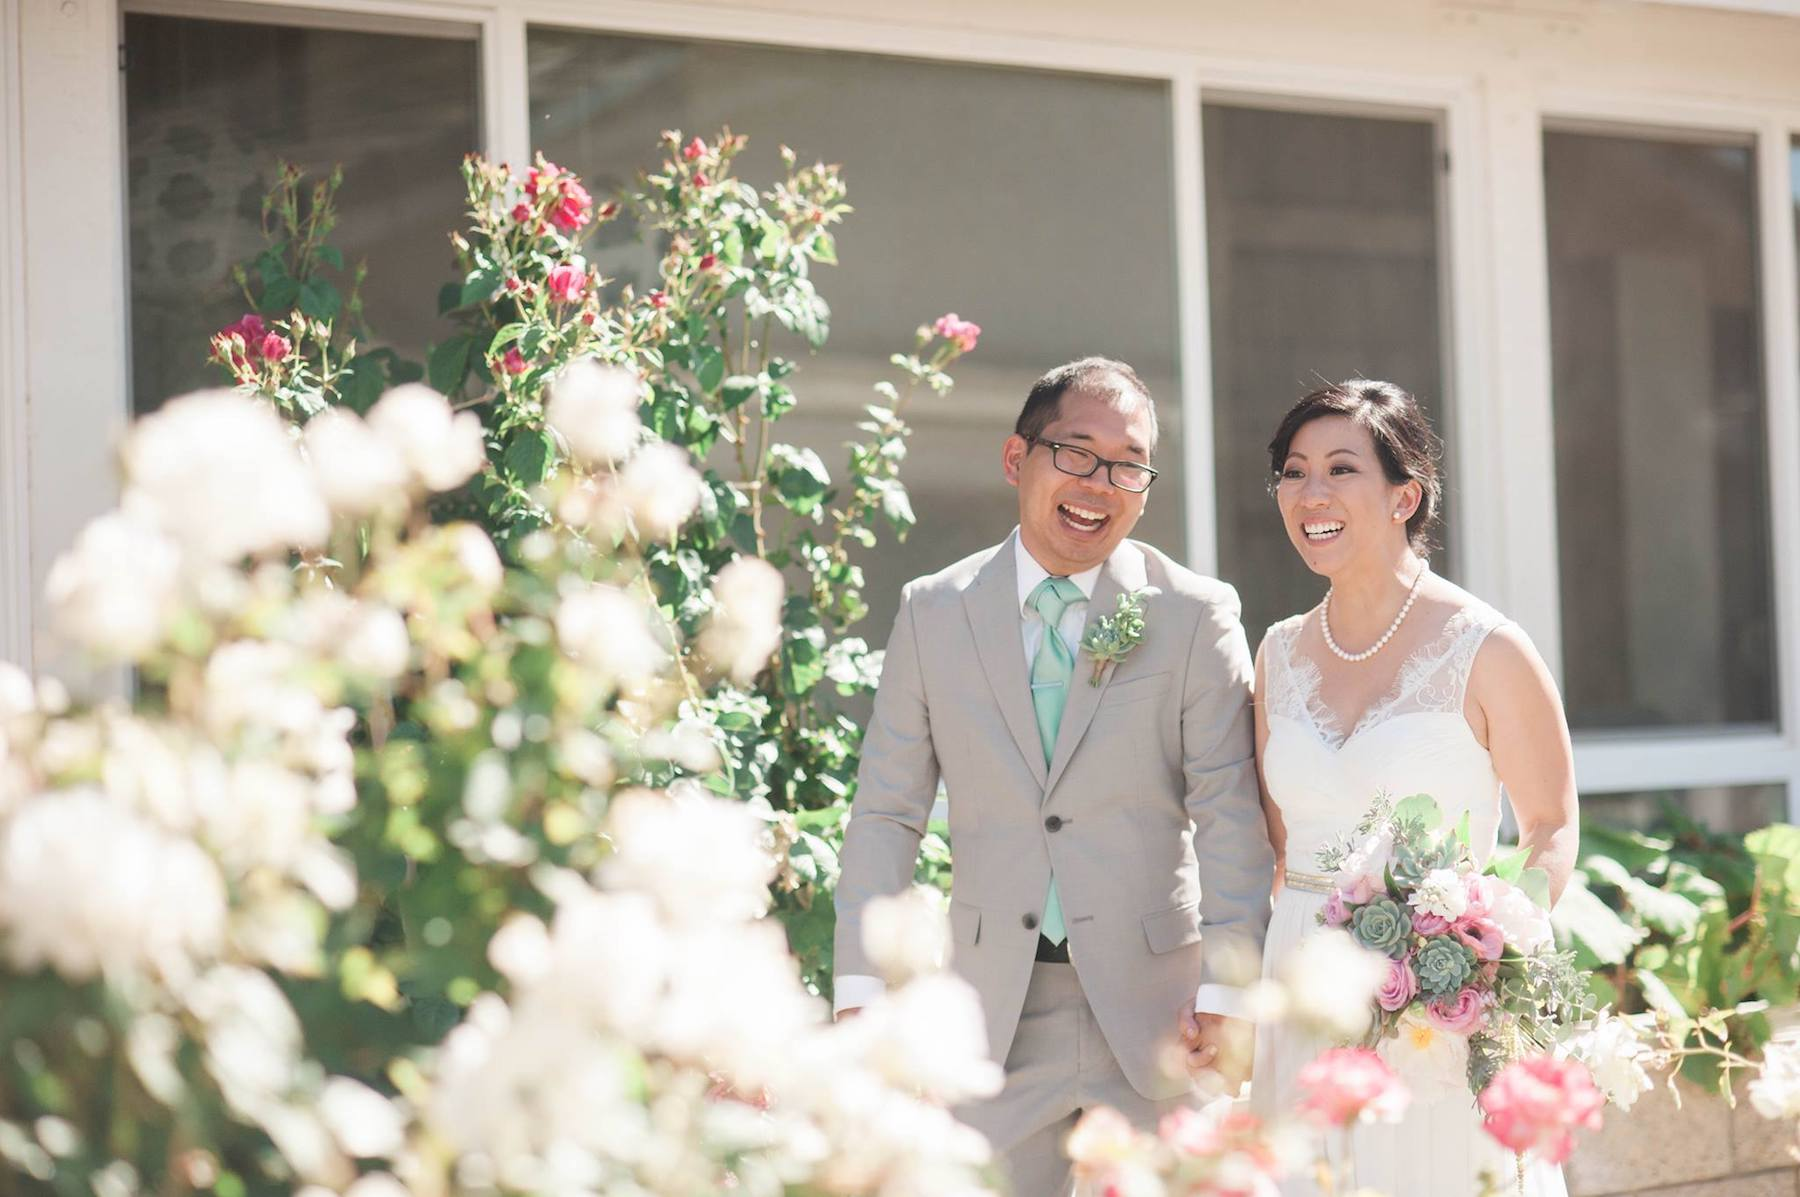 Mr. & Mrs. Ishibashi